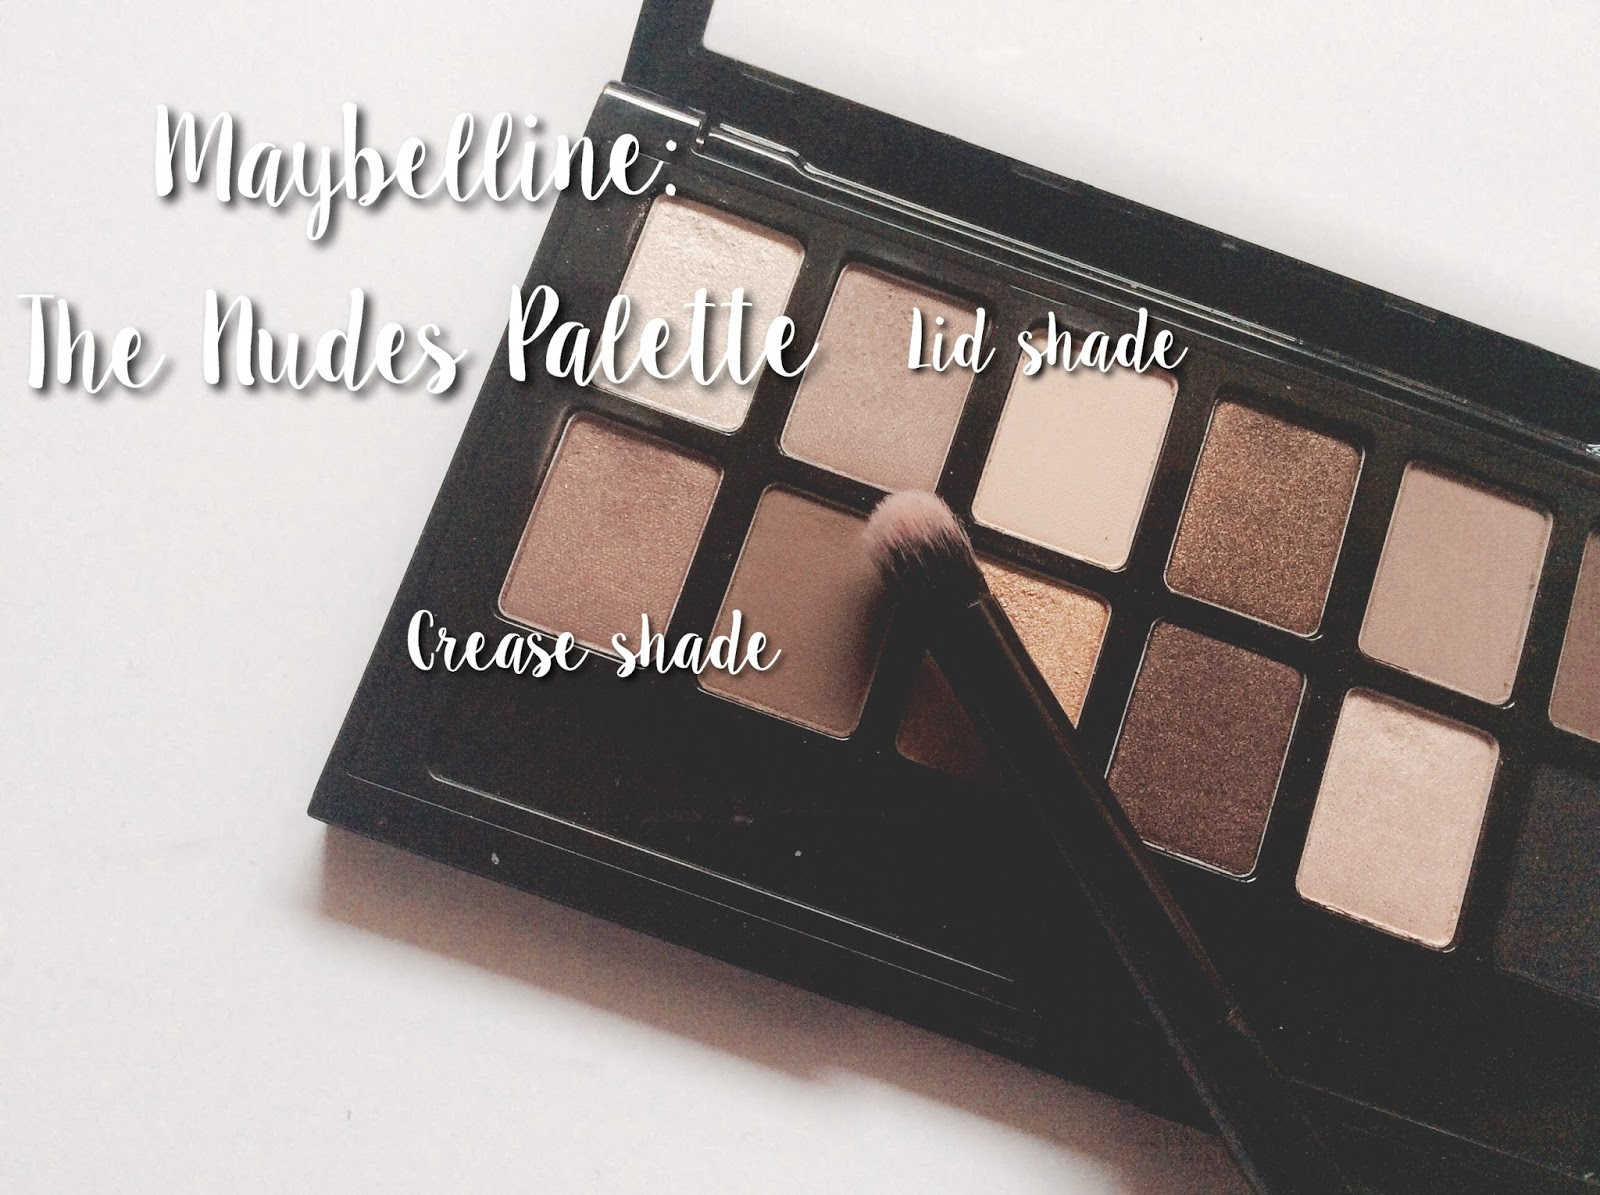 maybelline nudes palette